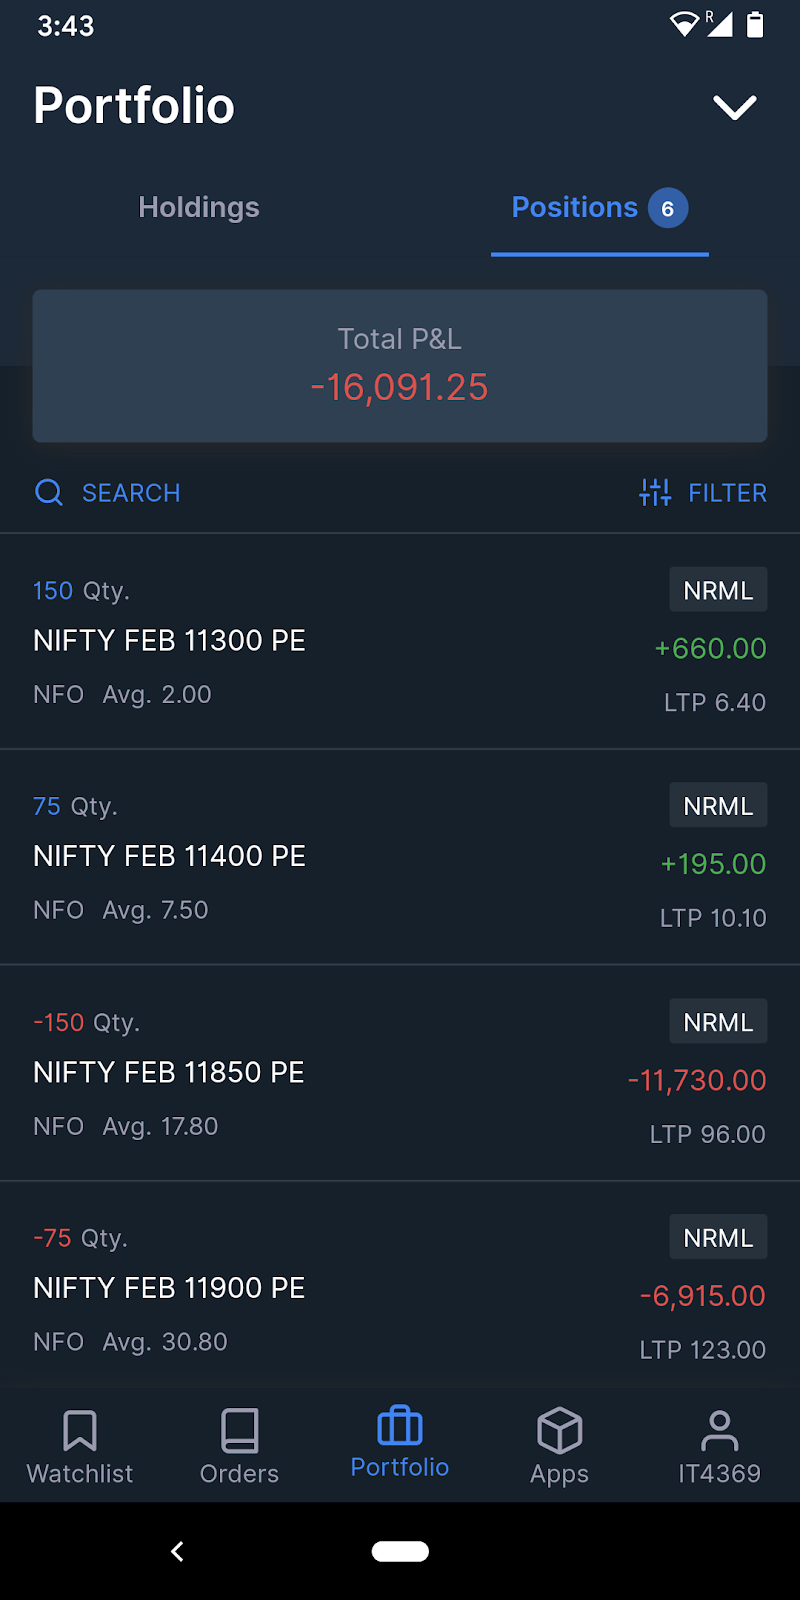 P&L for 24 Feb